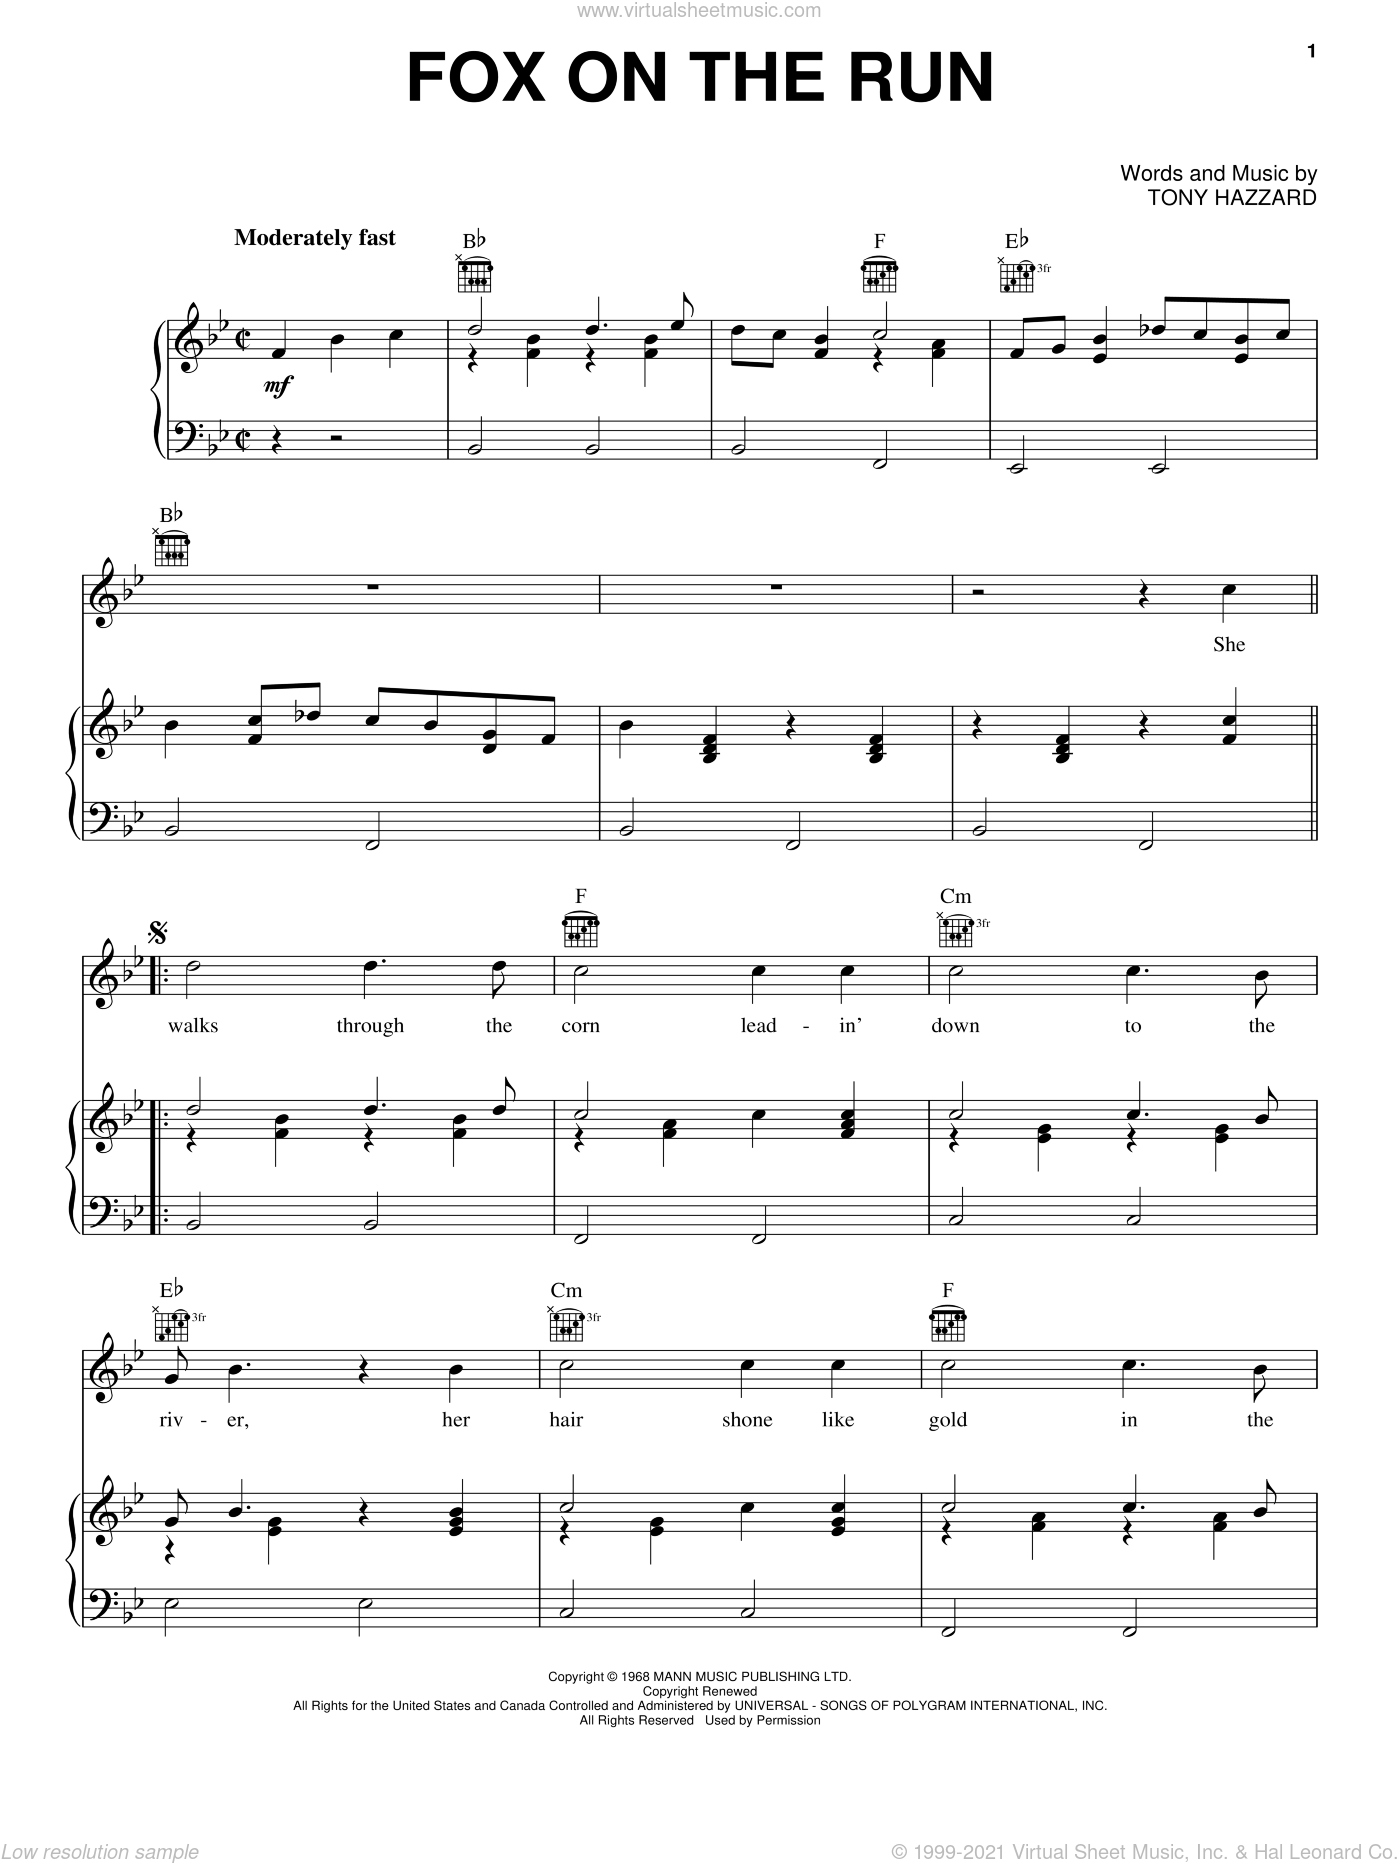 Fox On The Run sheet music for voice, piano or guitar by Tony Hazzard